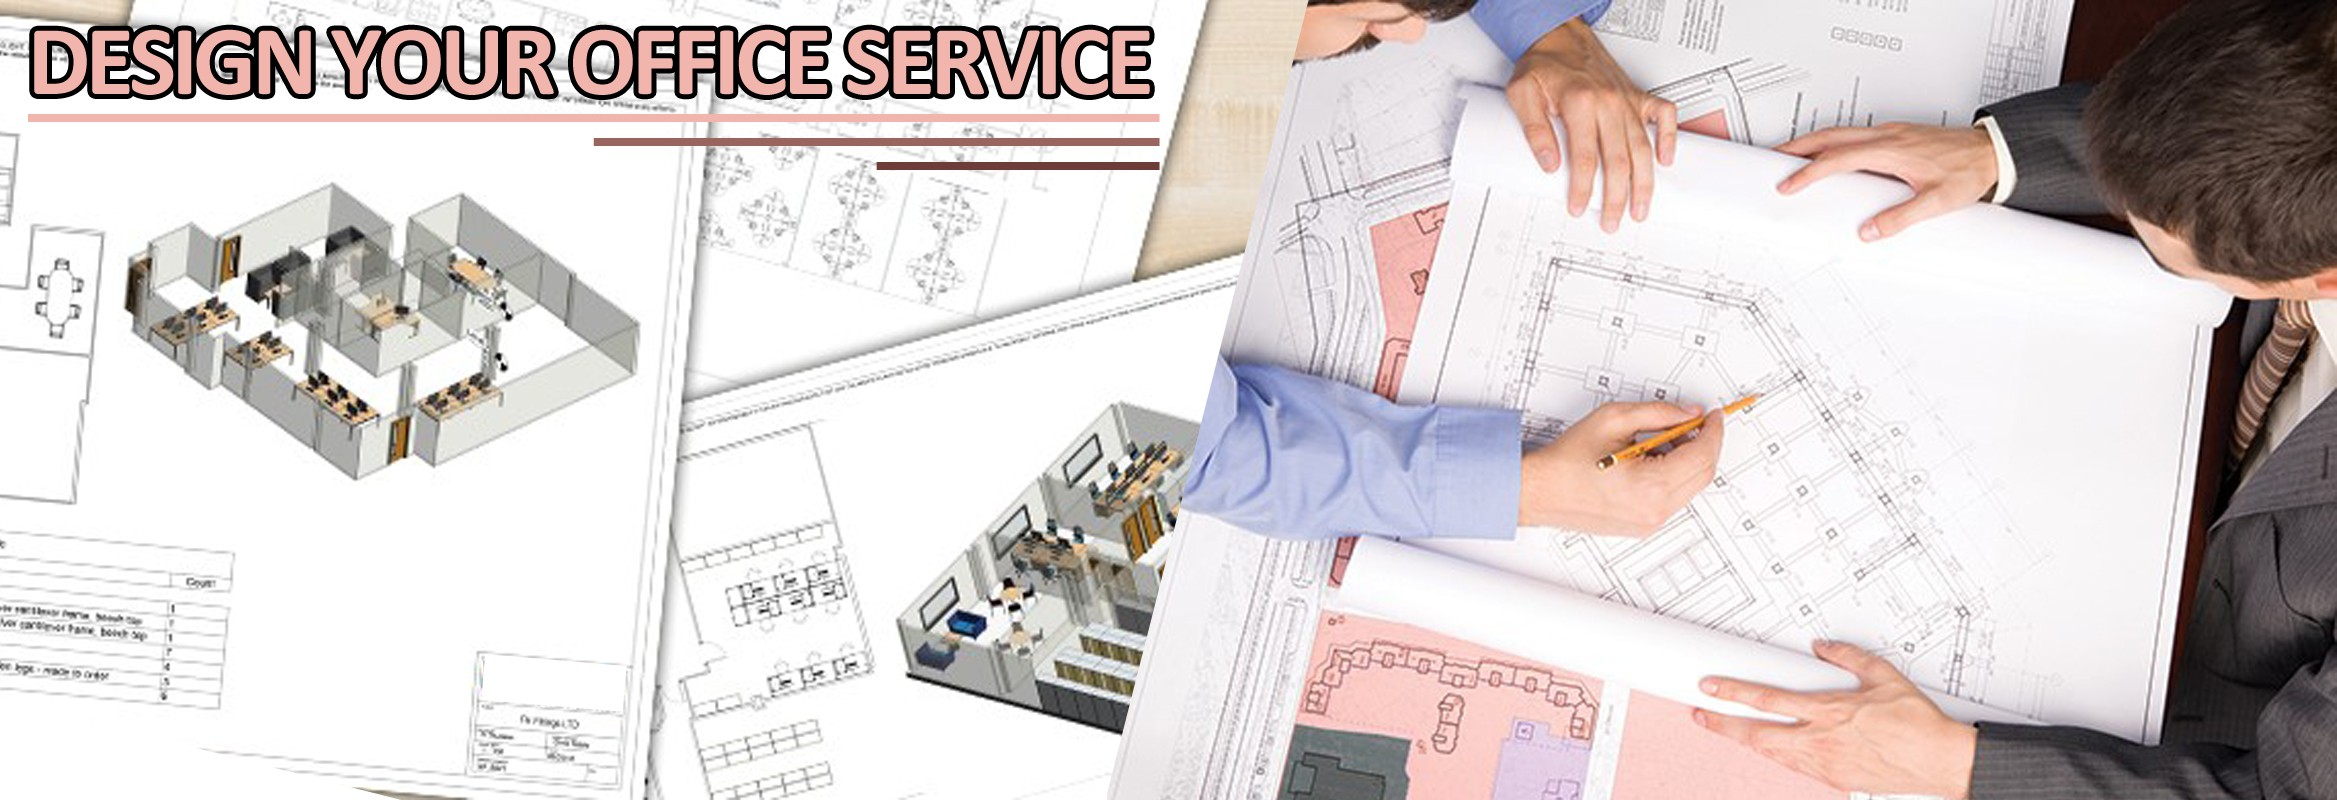 Design Your Office Service